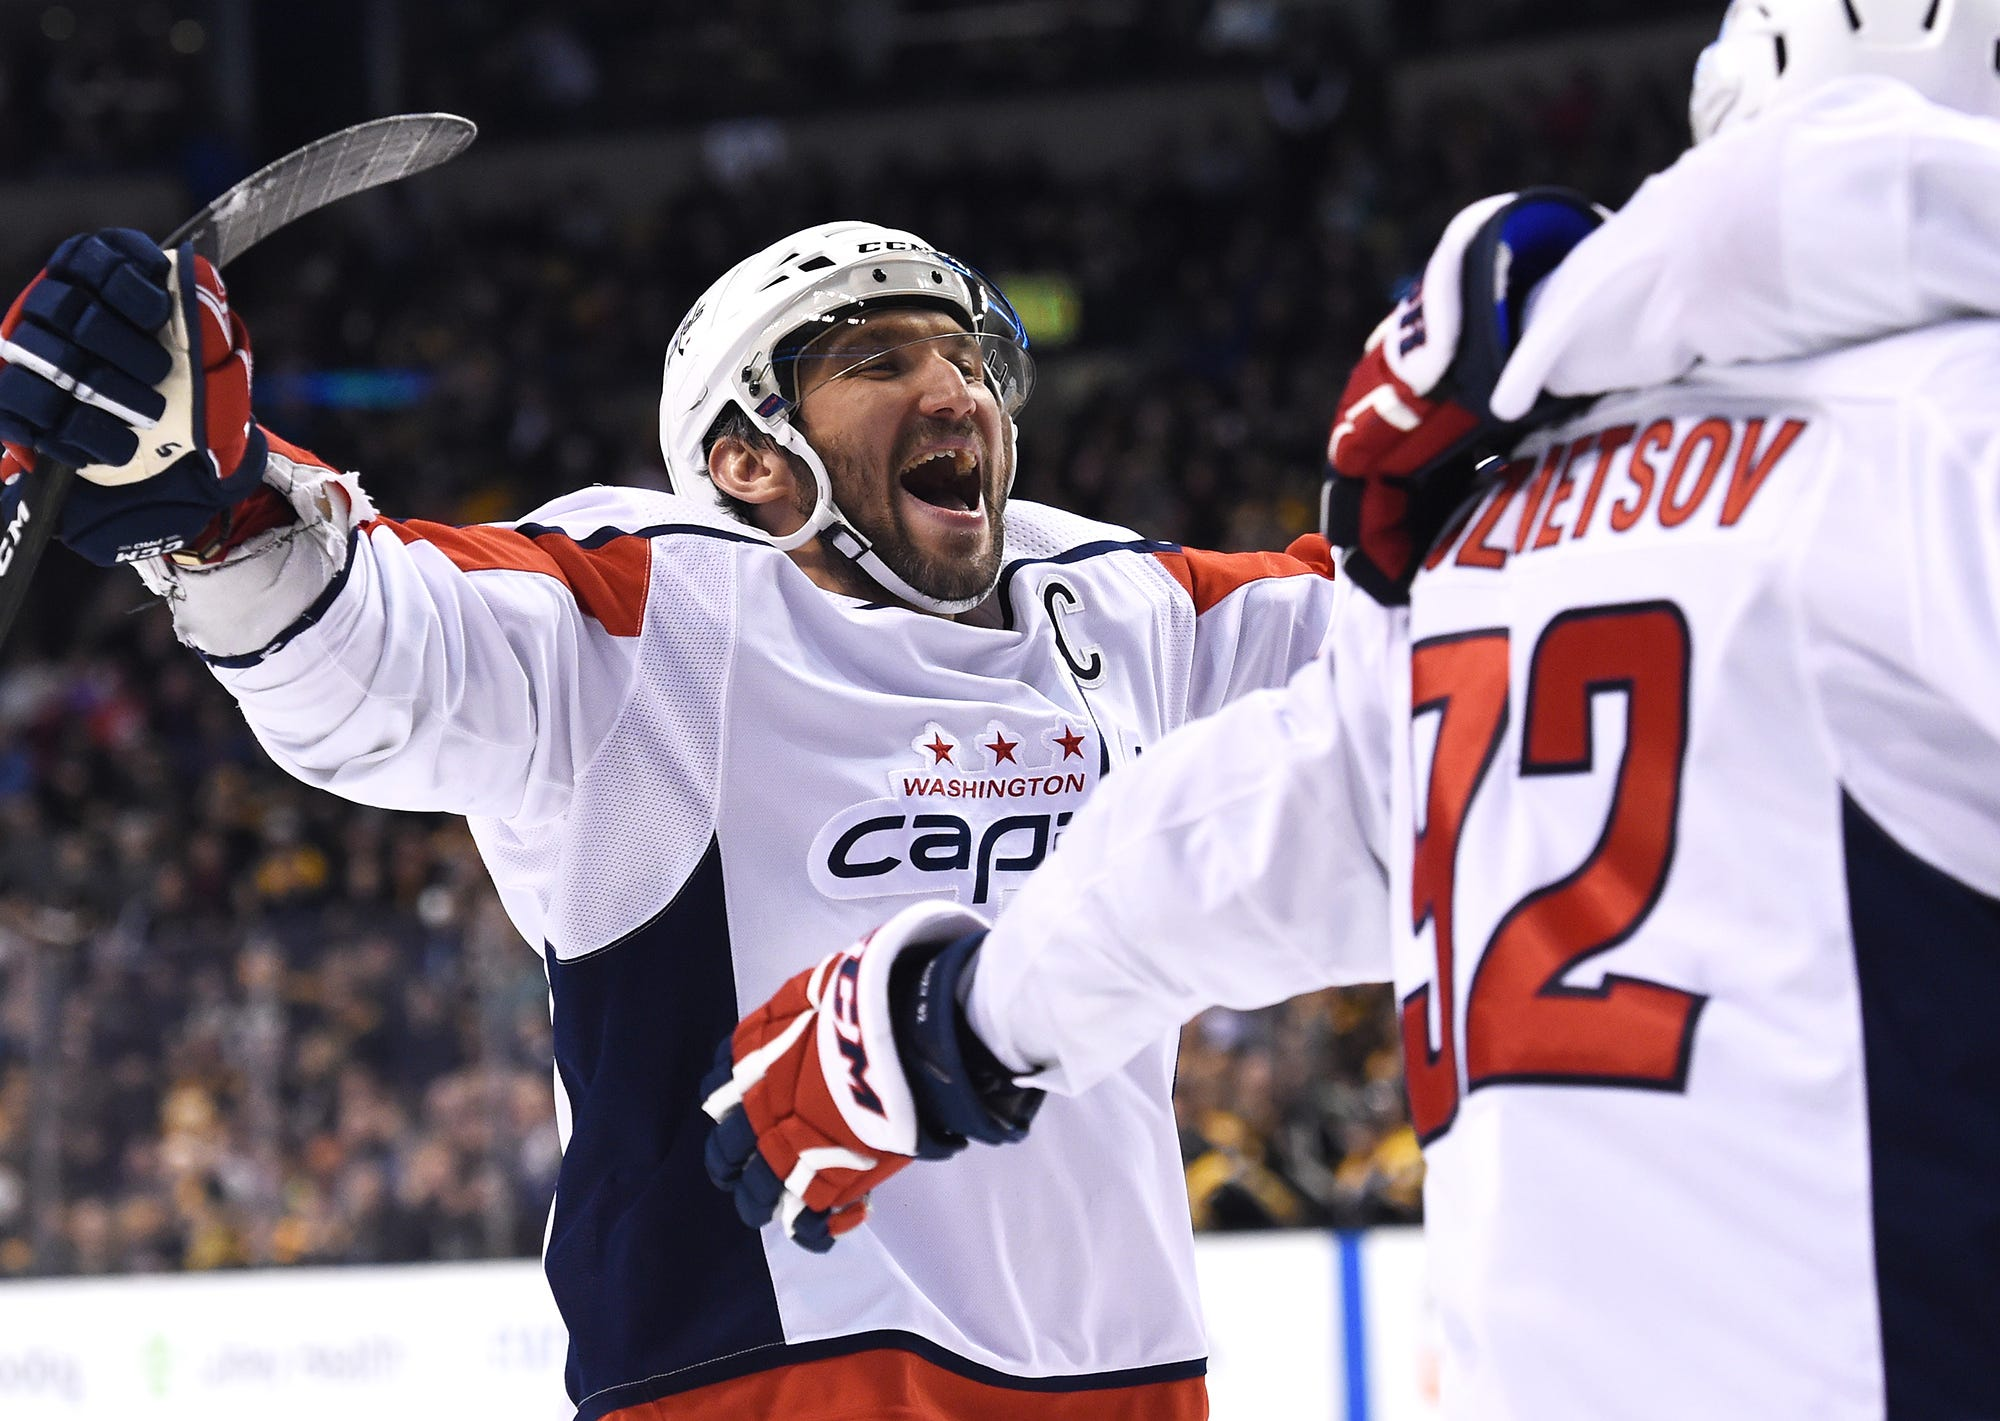 Alex Ovechkin on pace for 50-goal season at 32